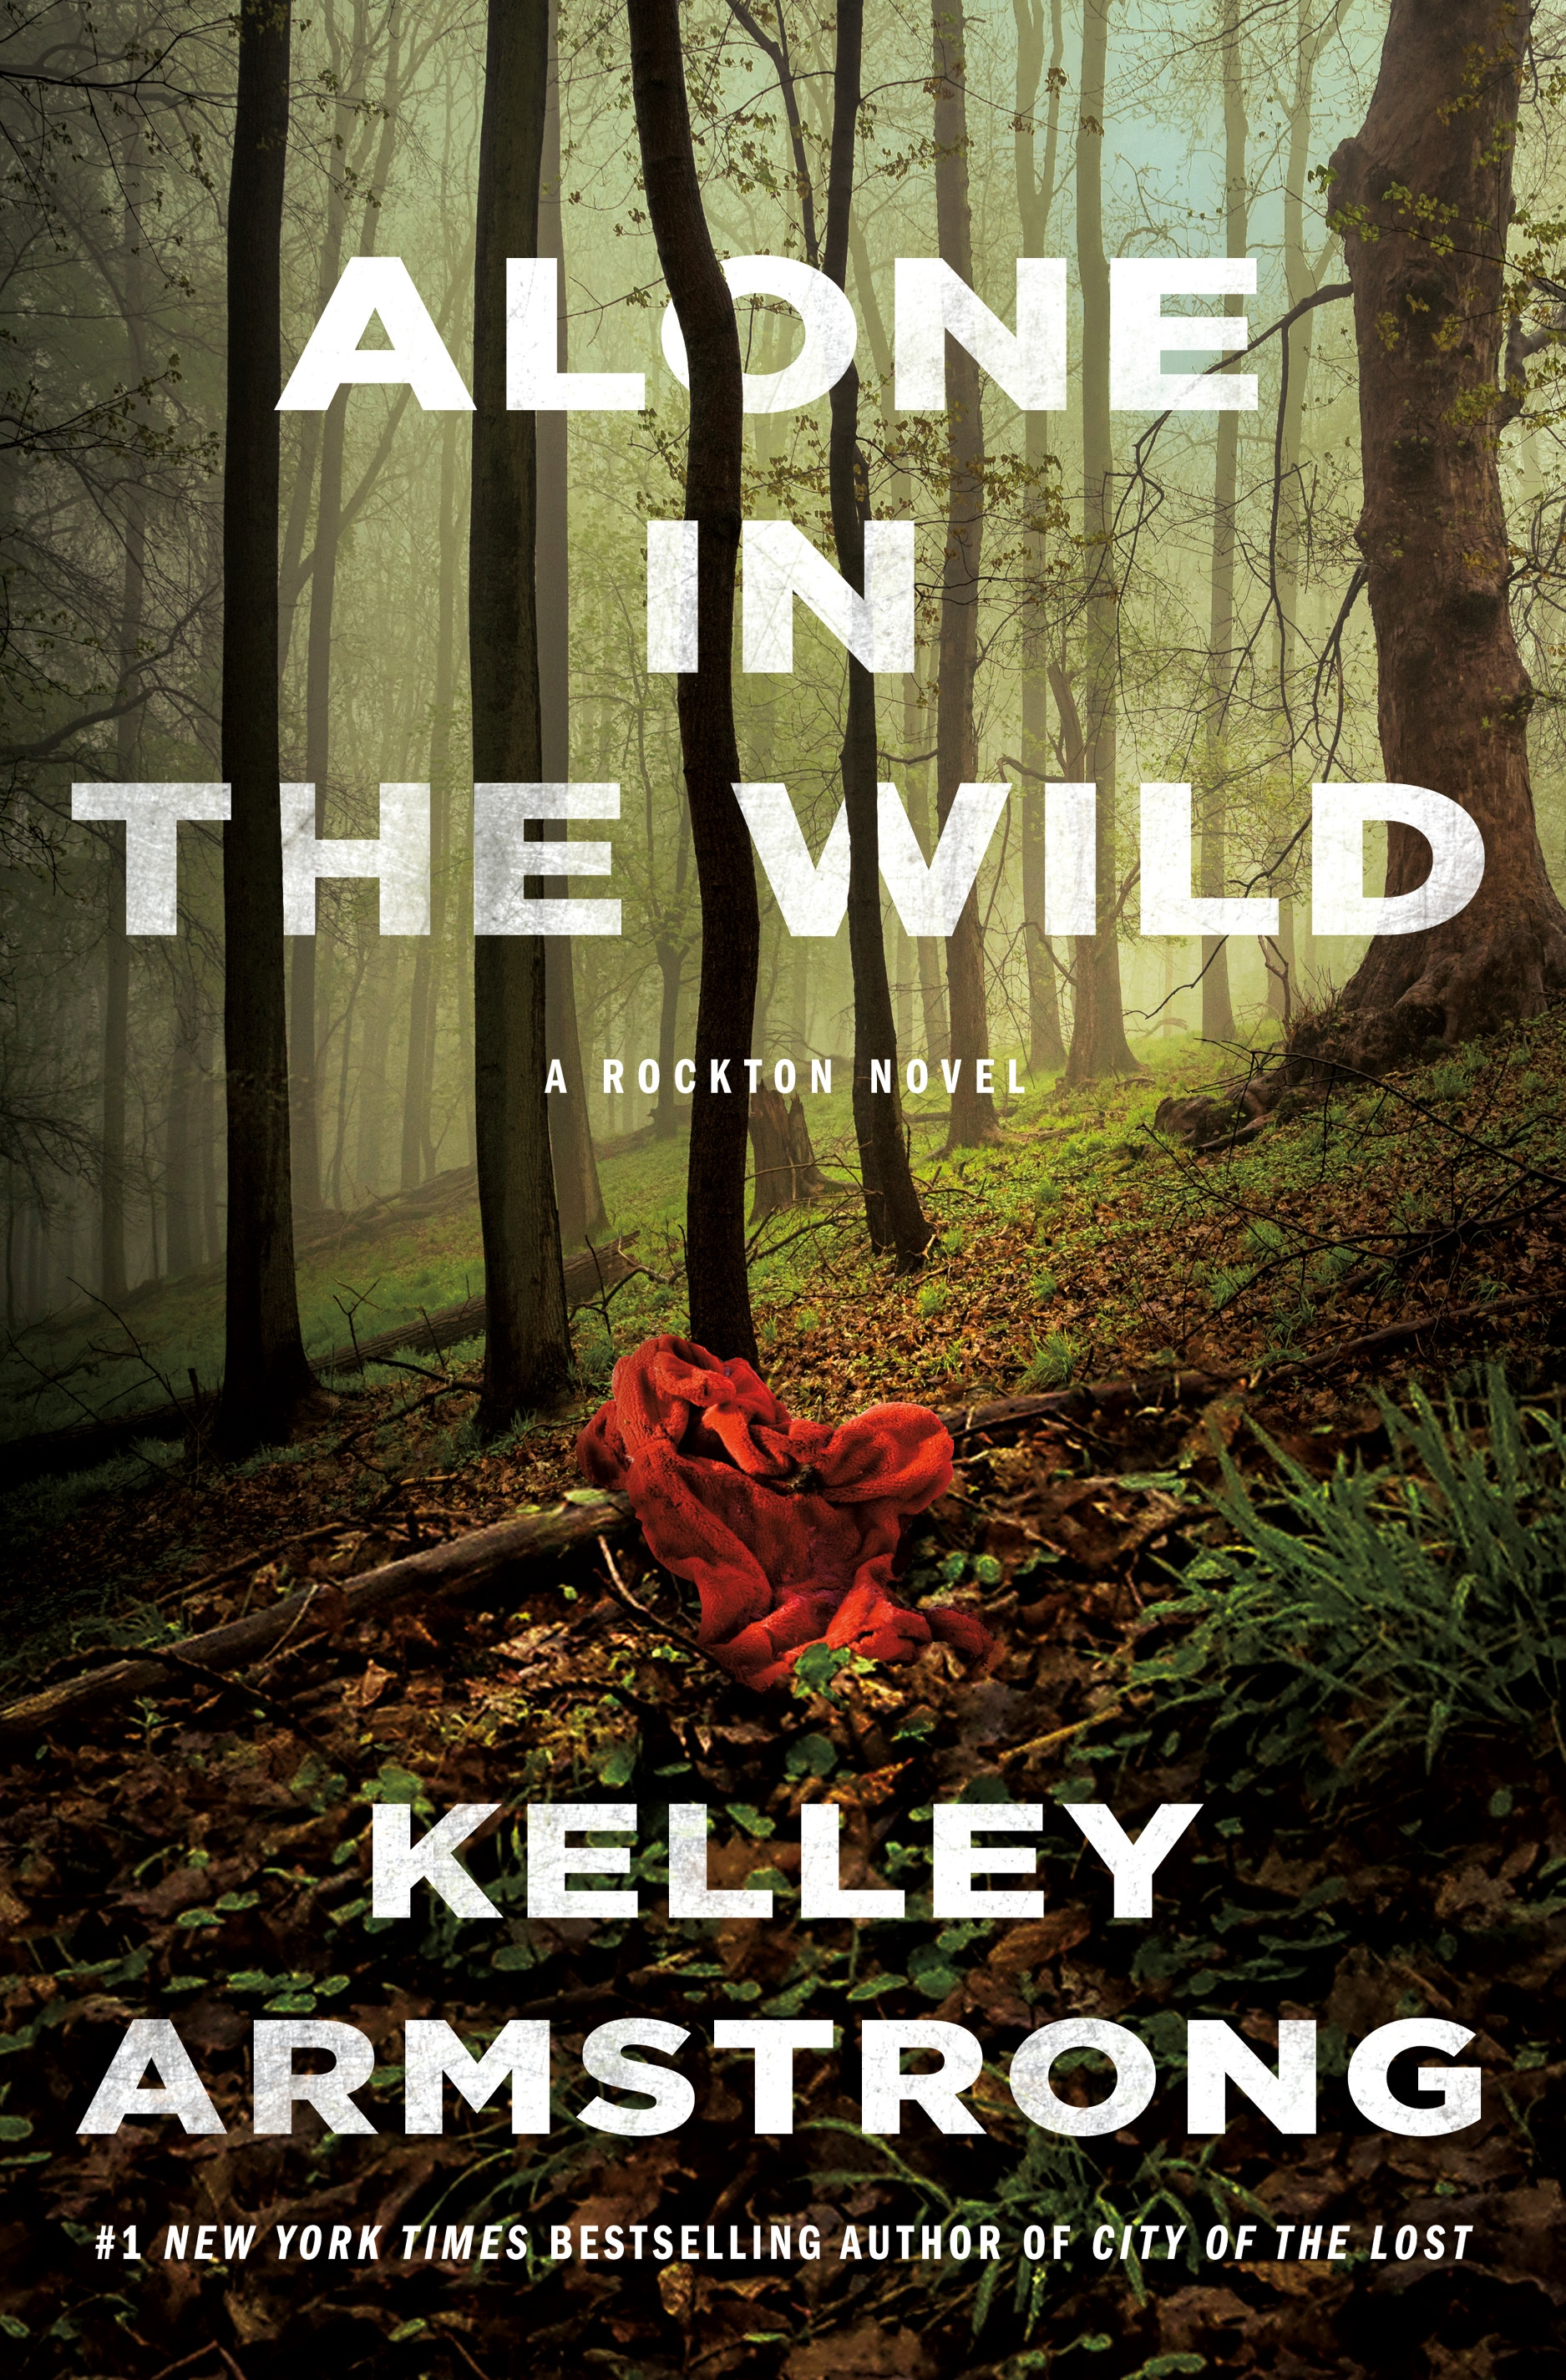 Alone in the Wild [electronic resource] : A Rockton Novel